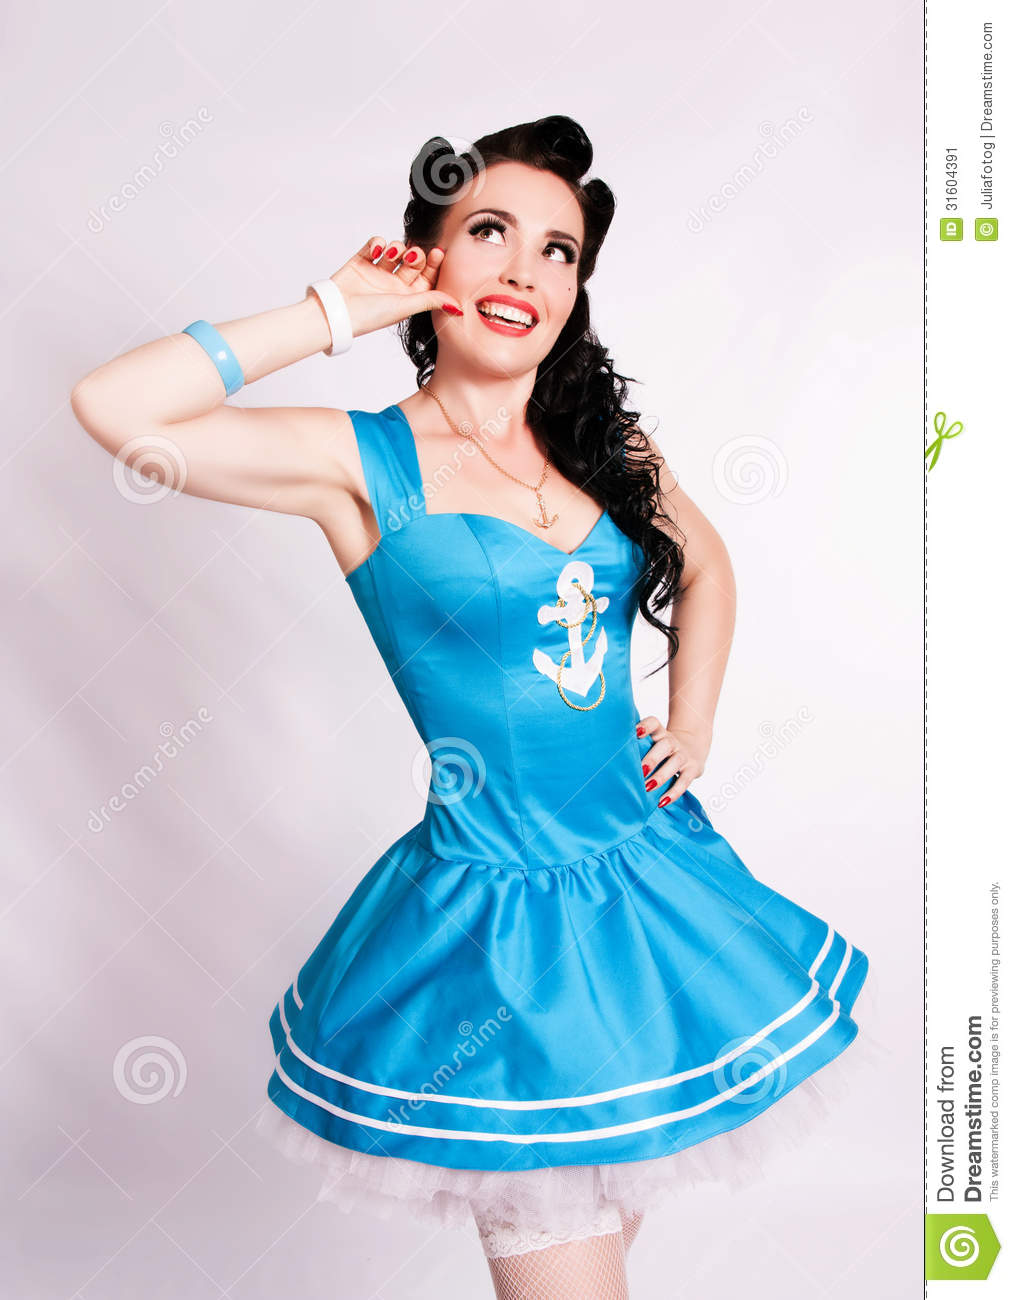 sailor pin up girl with bright make up stock image image 31604391. Black Bedroom Furniture Sets. Home Design Ideas